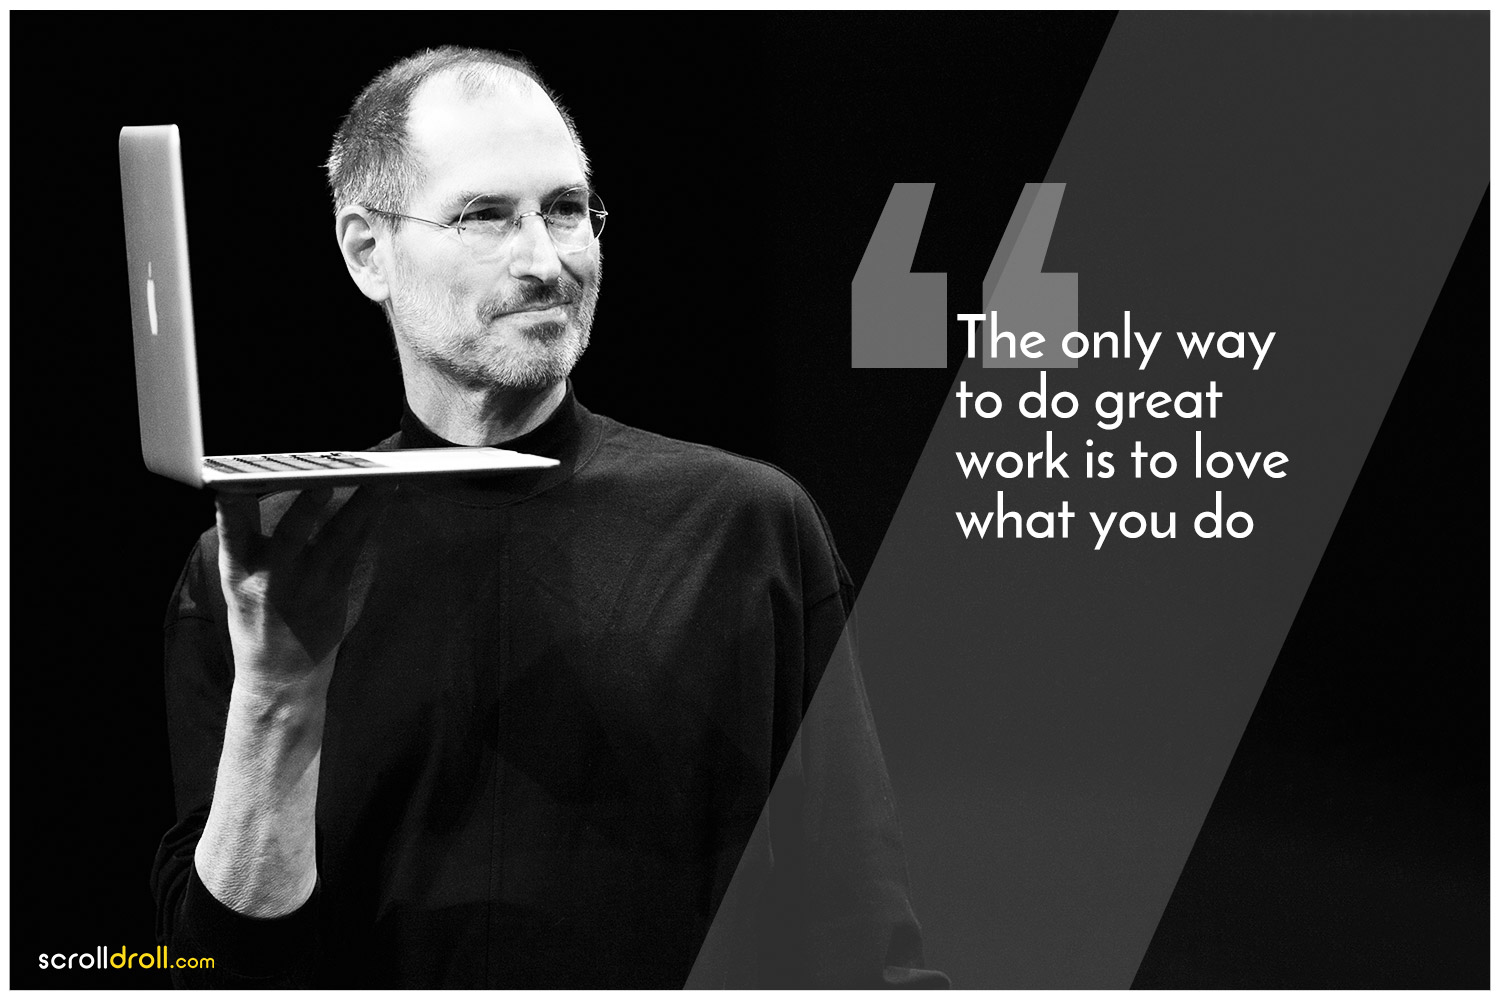 -Steve Jobs Quotes- The only way to do great work is to love what to do